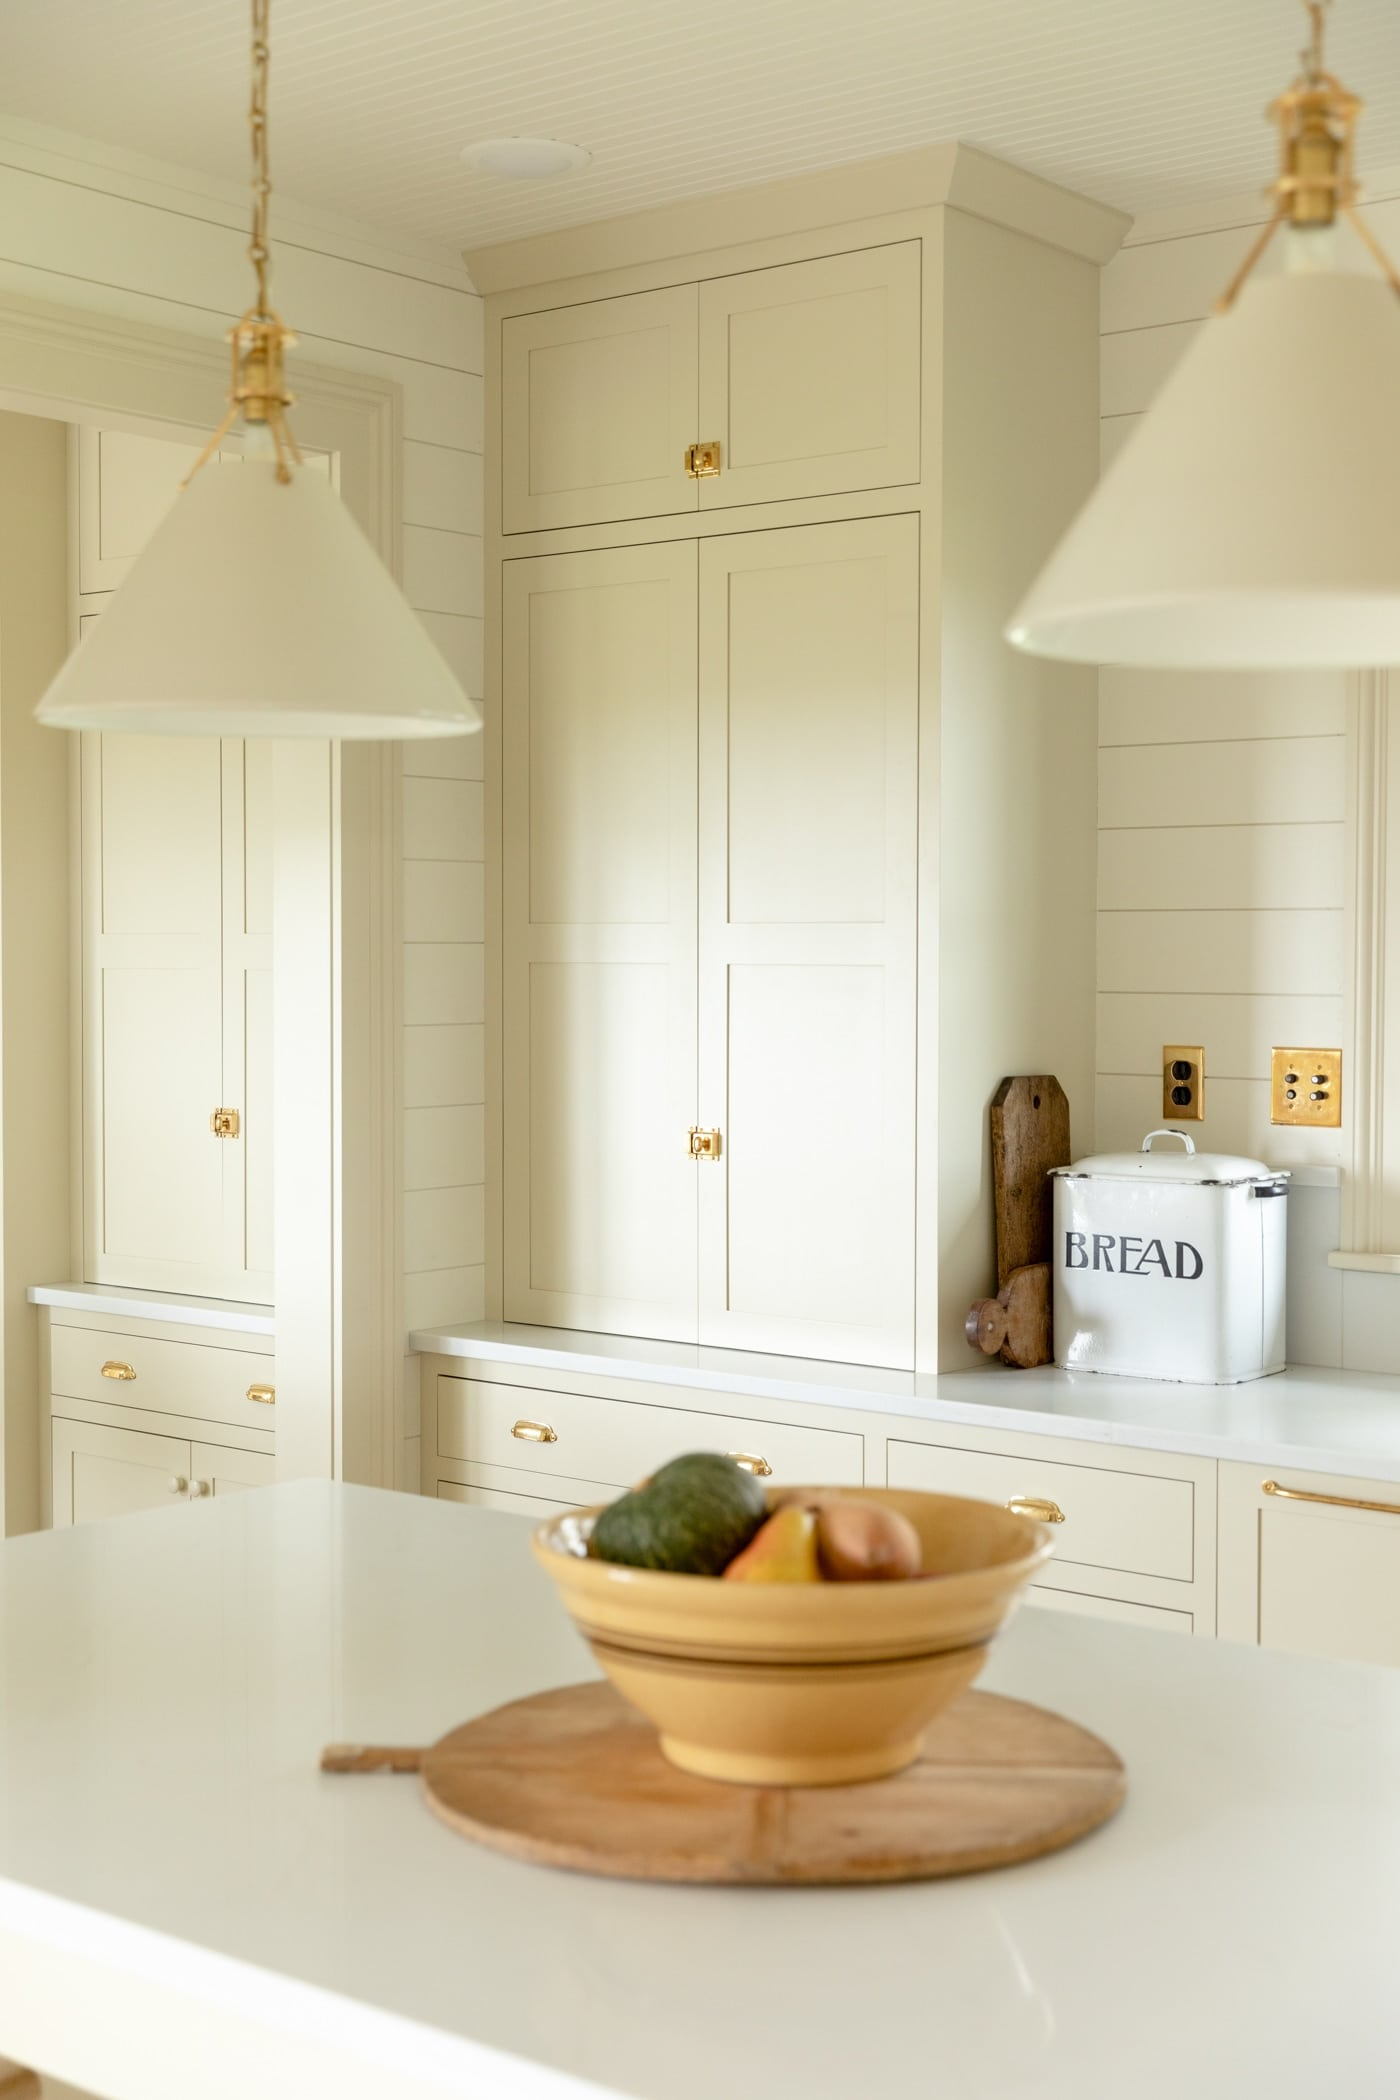 Large pantry cabinet in creamy white farmhouse kitchen with yellow bowl filled with squash sitting on large island with white countertop and pendants hanging above island